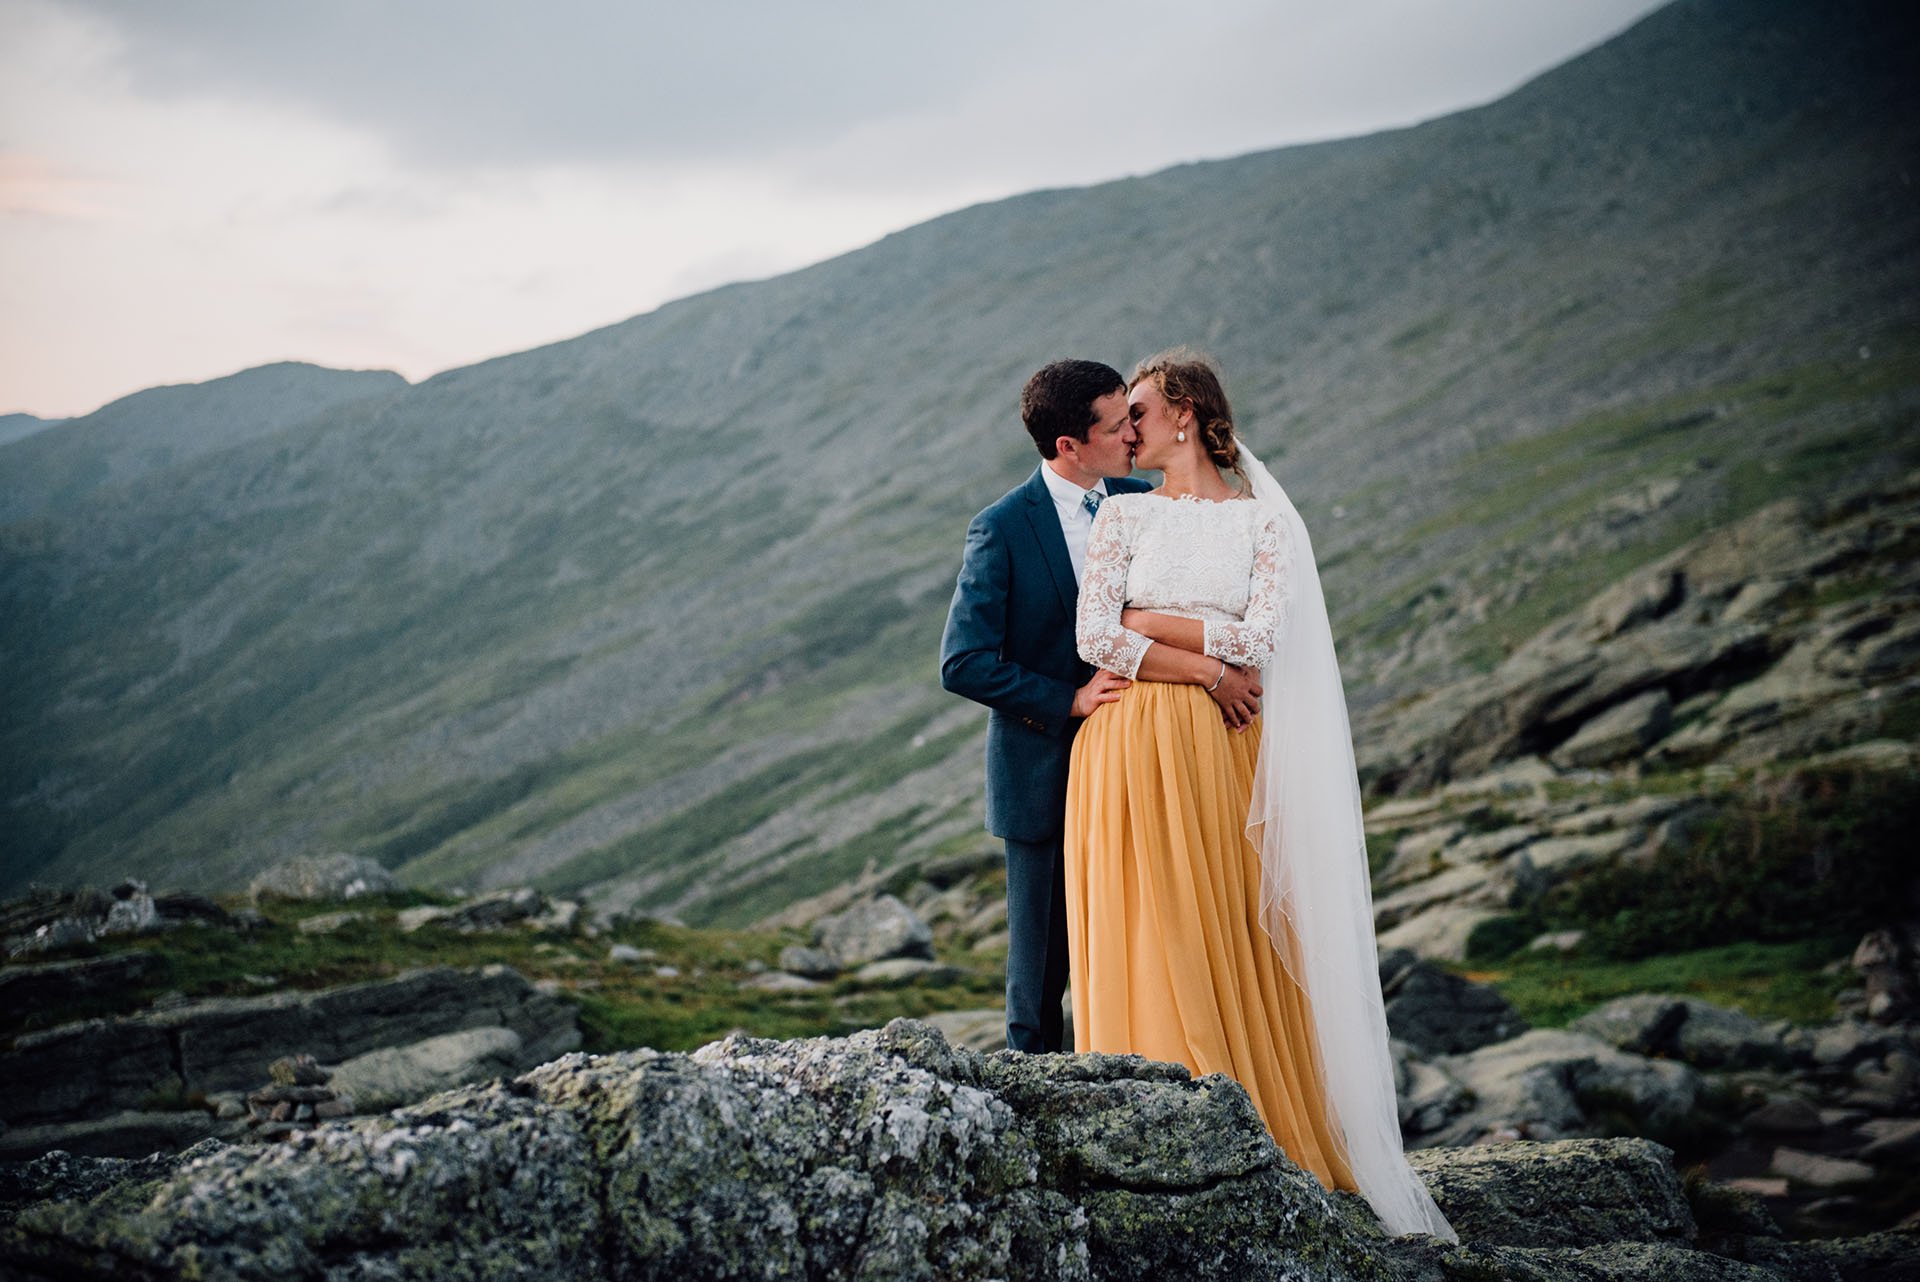 lakes-of-the-clouds-wedding-photographer-111